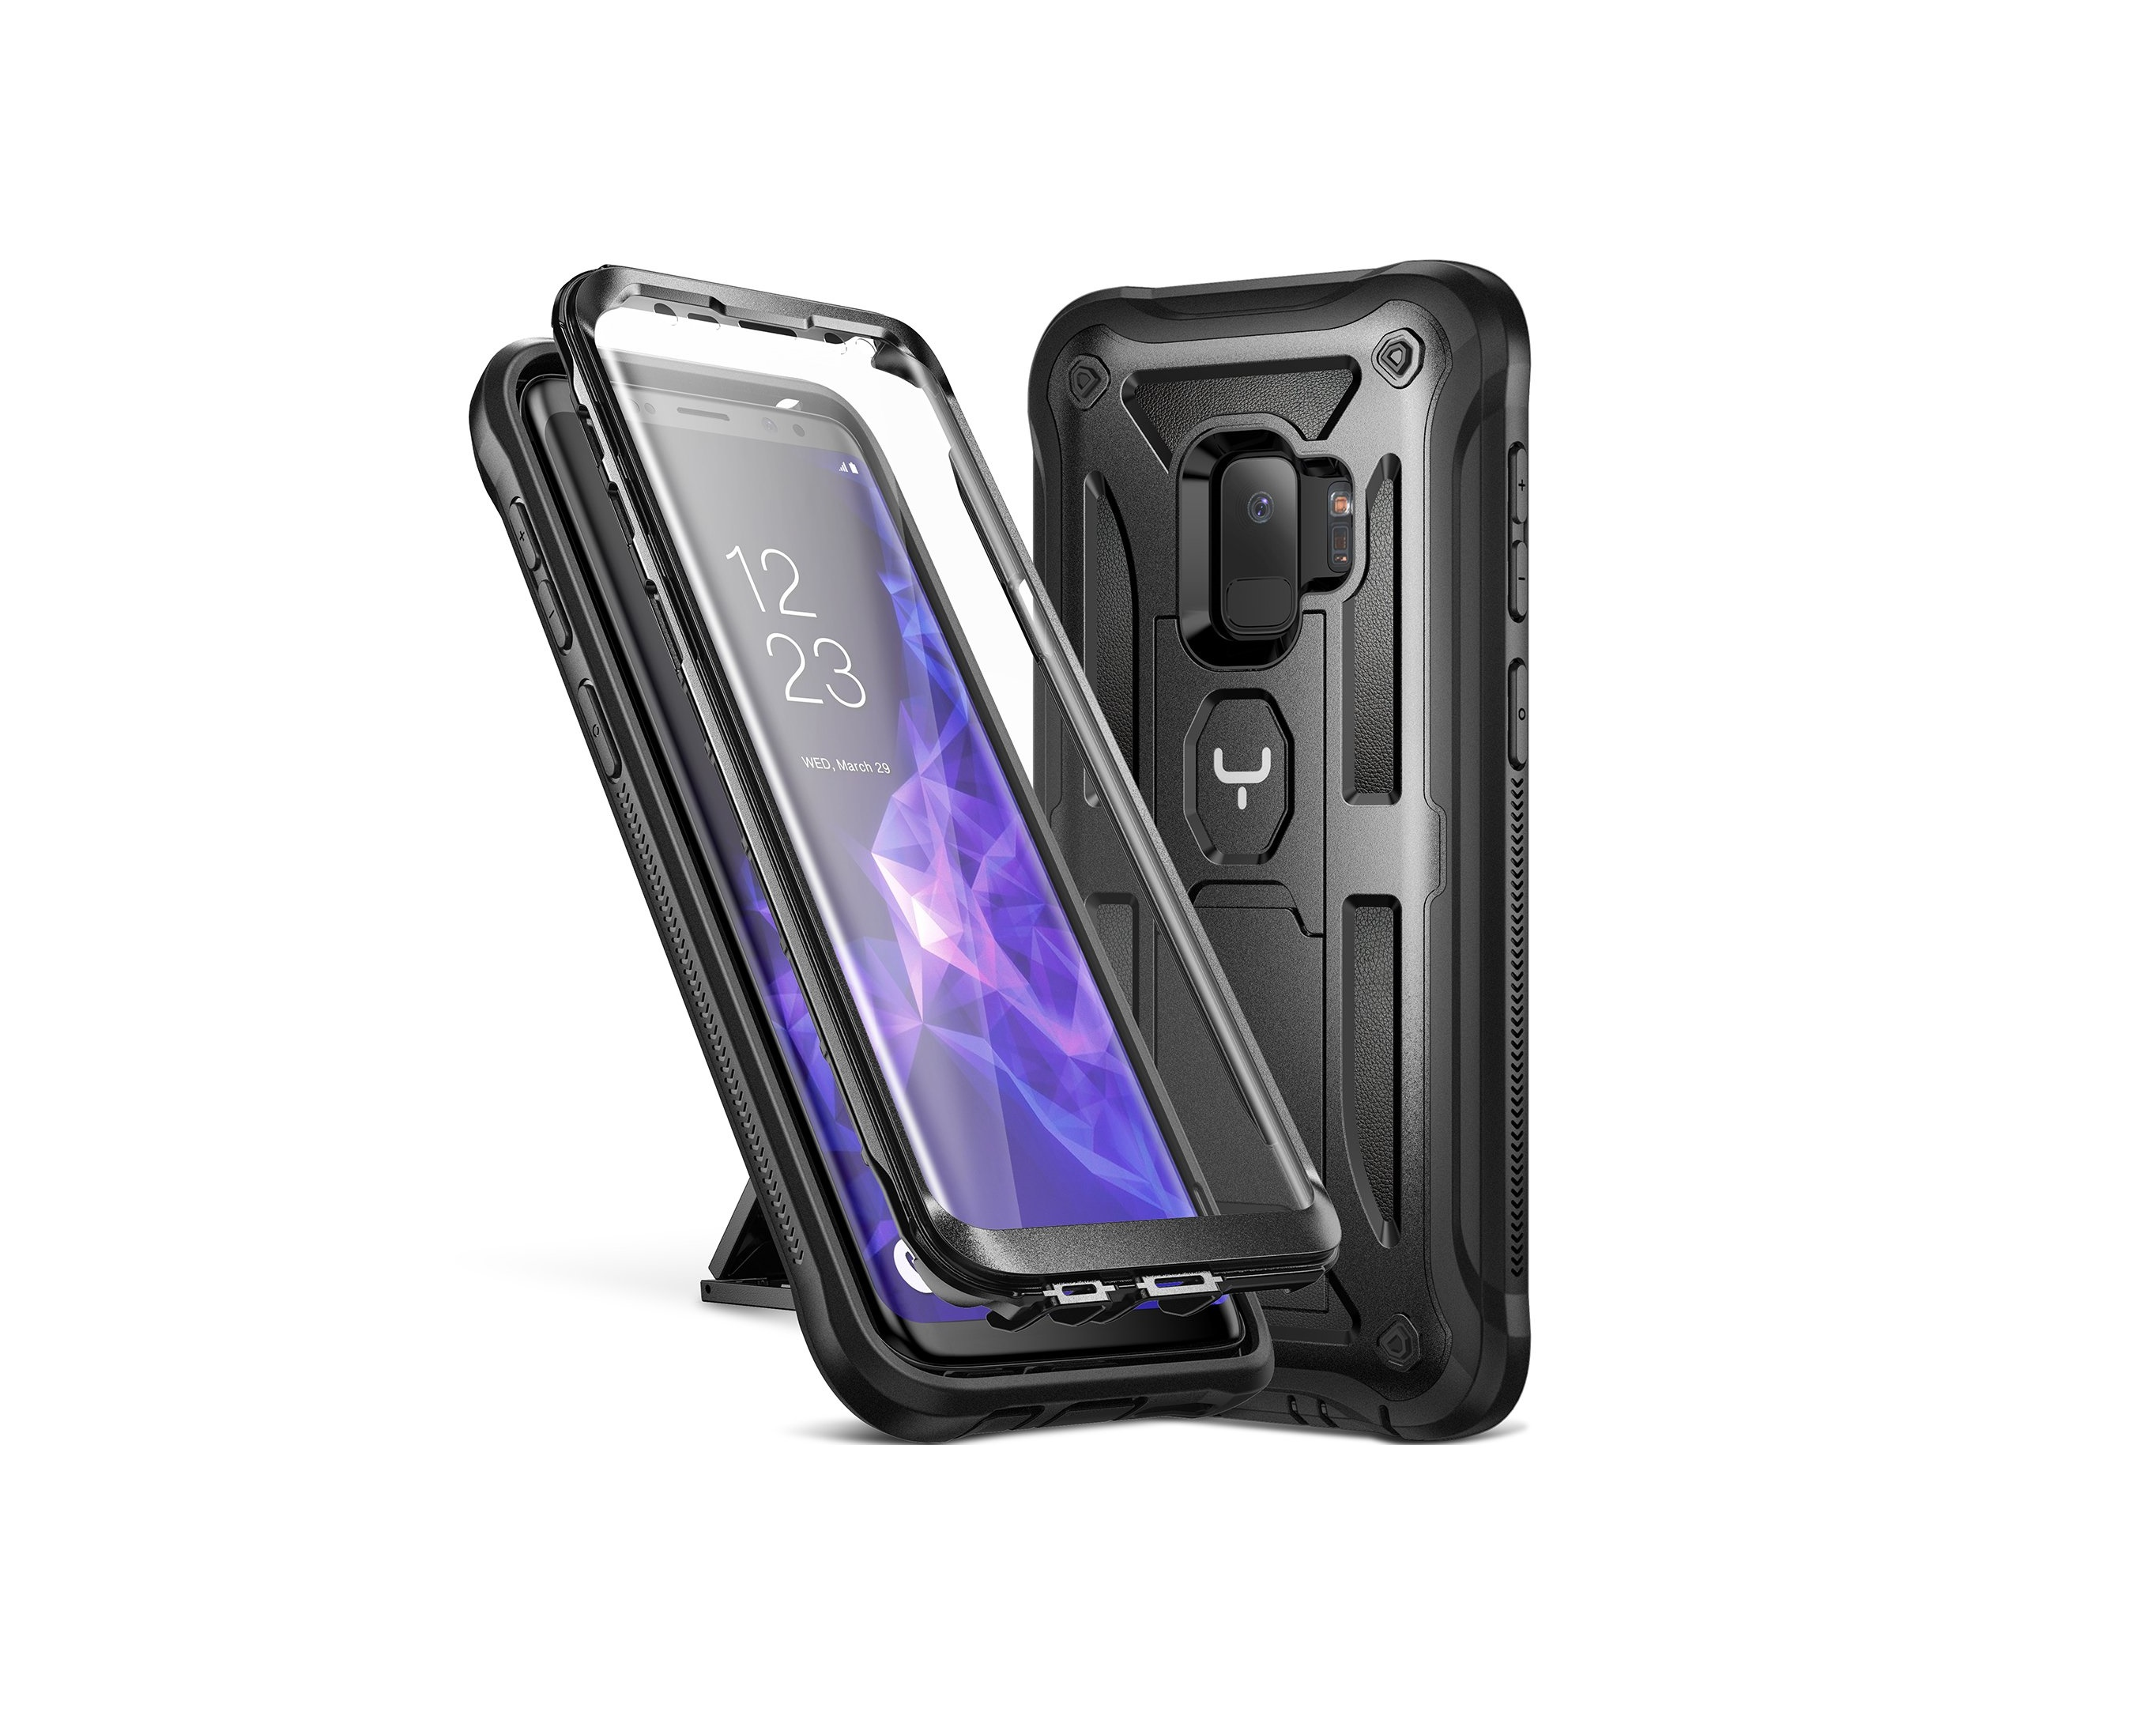 Top 5 Best Waterproof Cases for Galaxy S9 in 2020